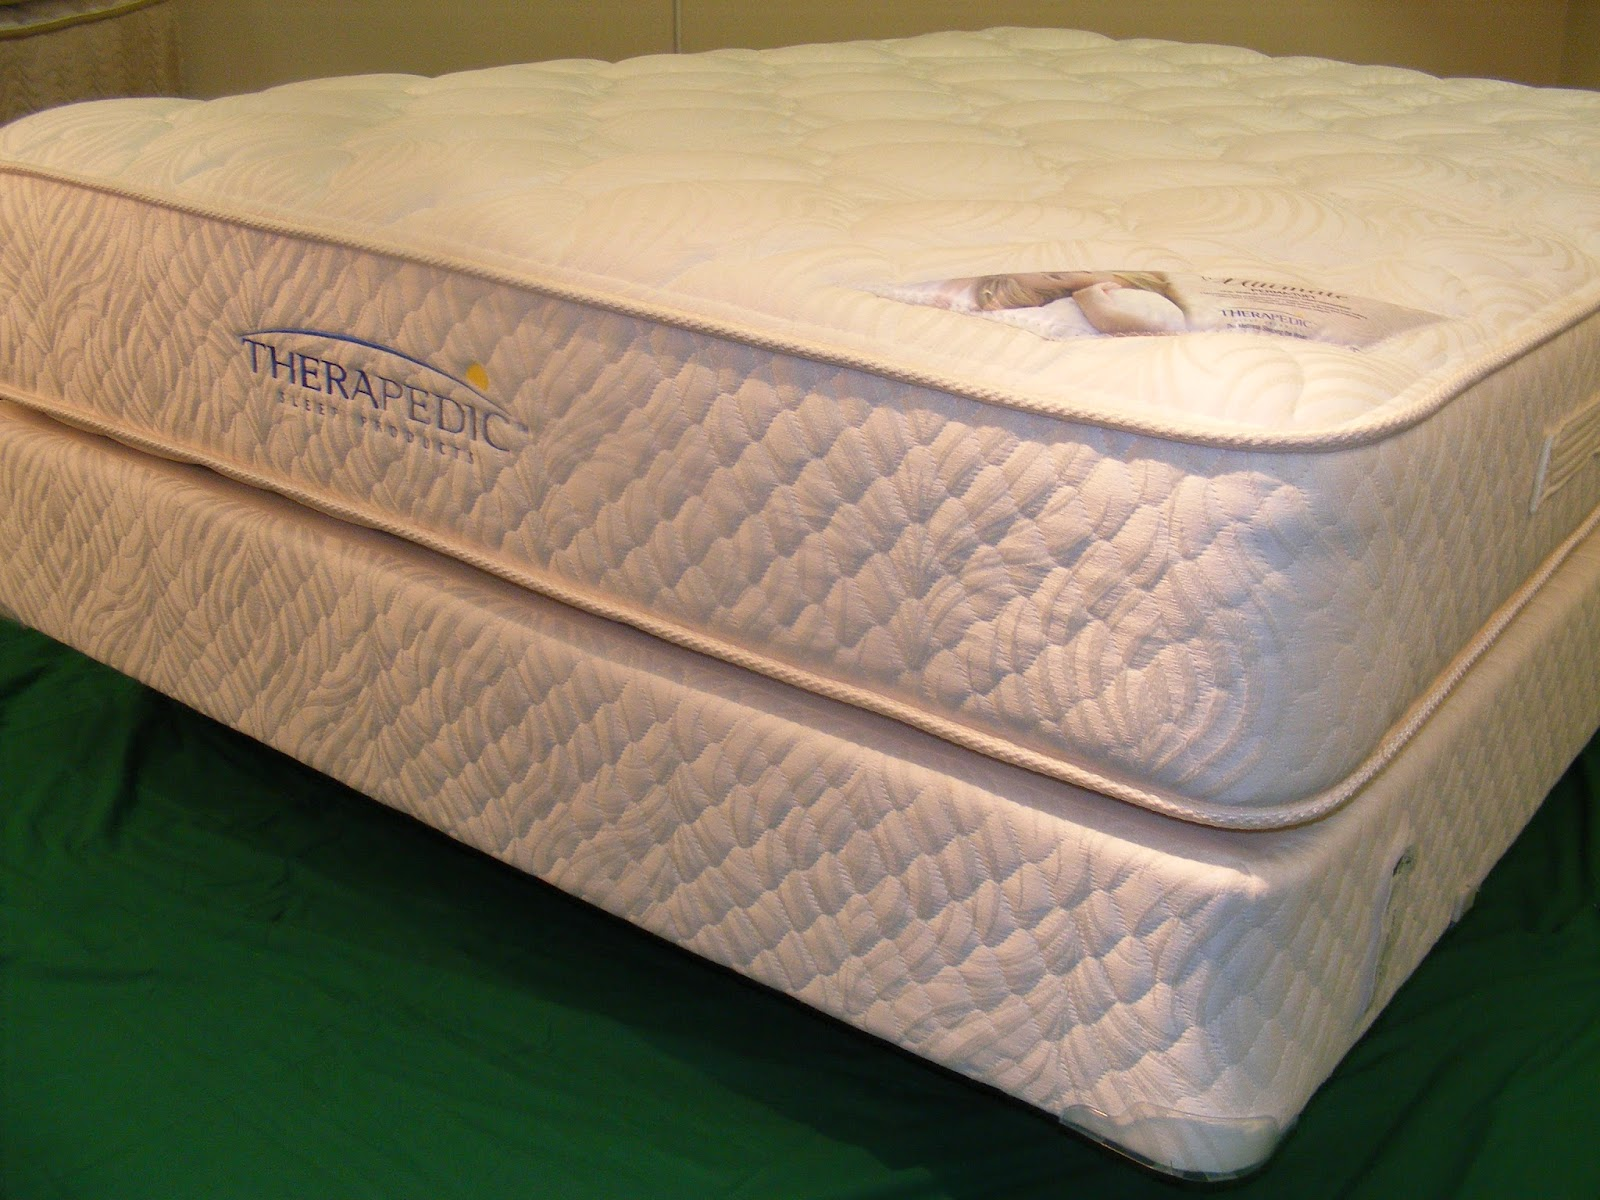 A Mattress For A 436 Lb Woman Therapedic Two Sided Medi